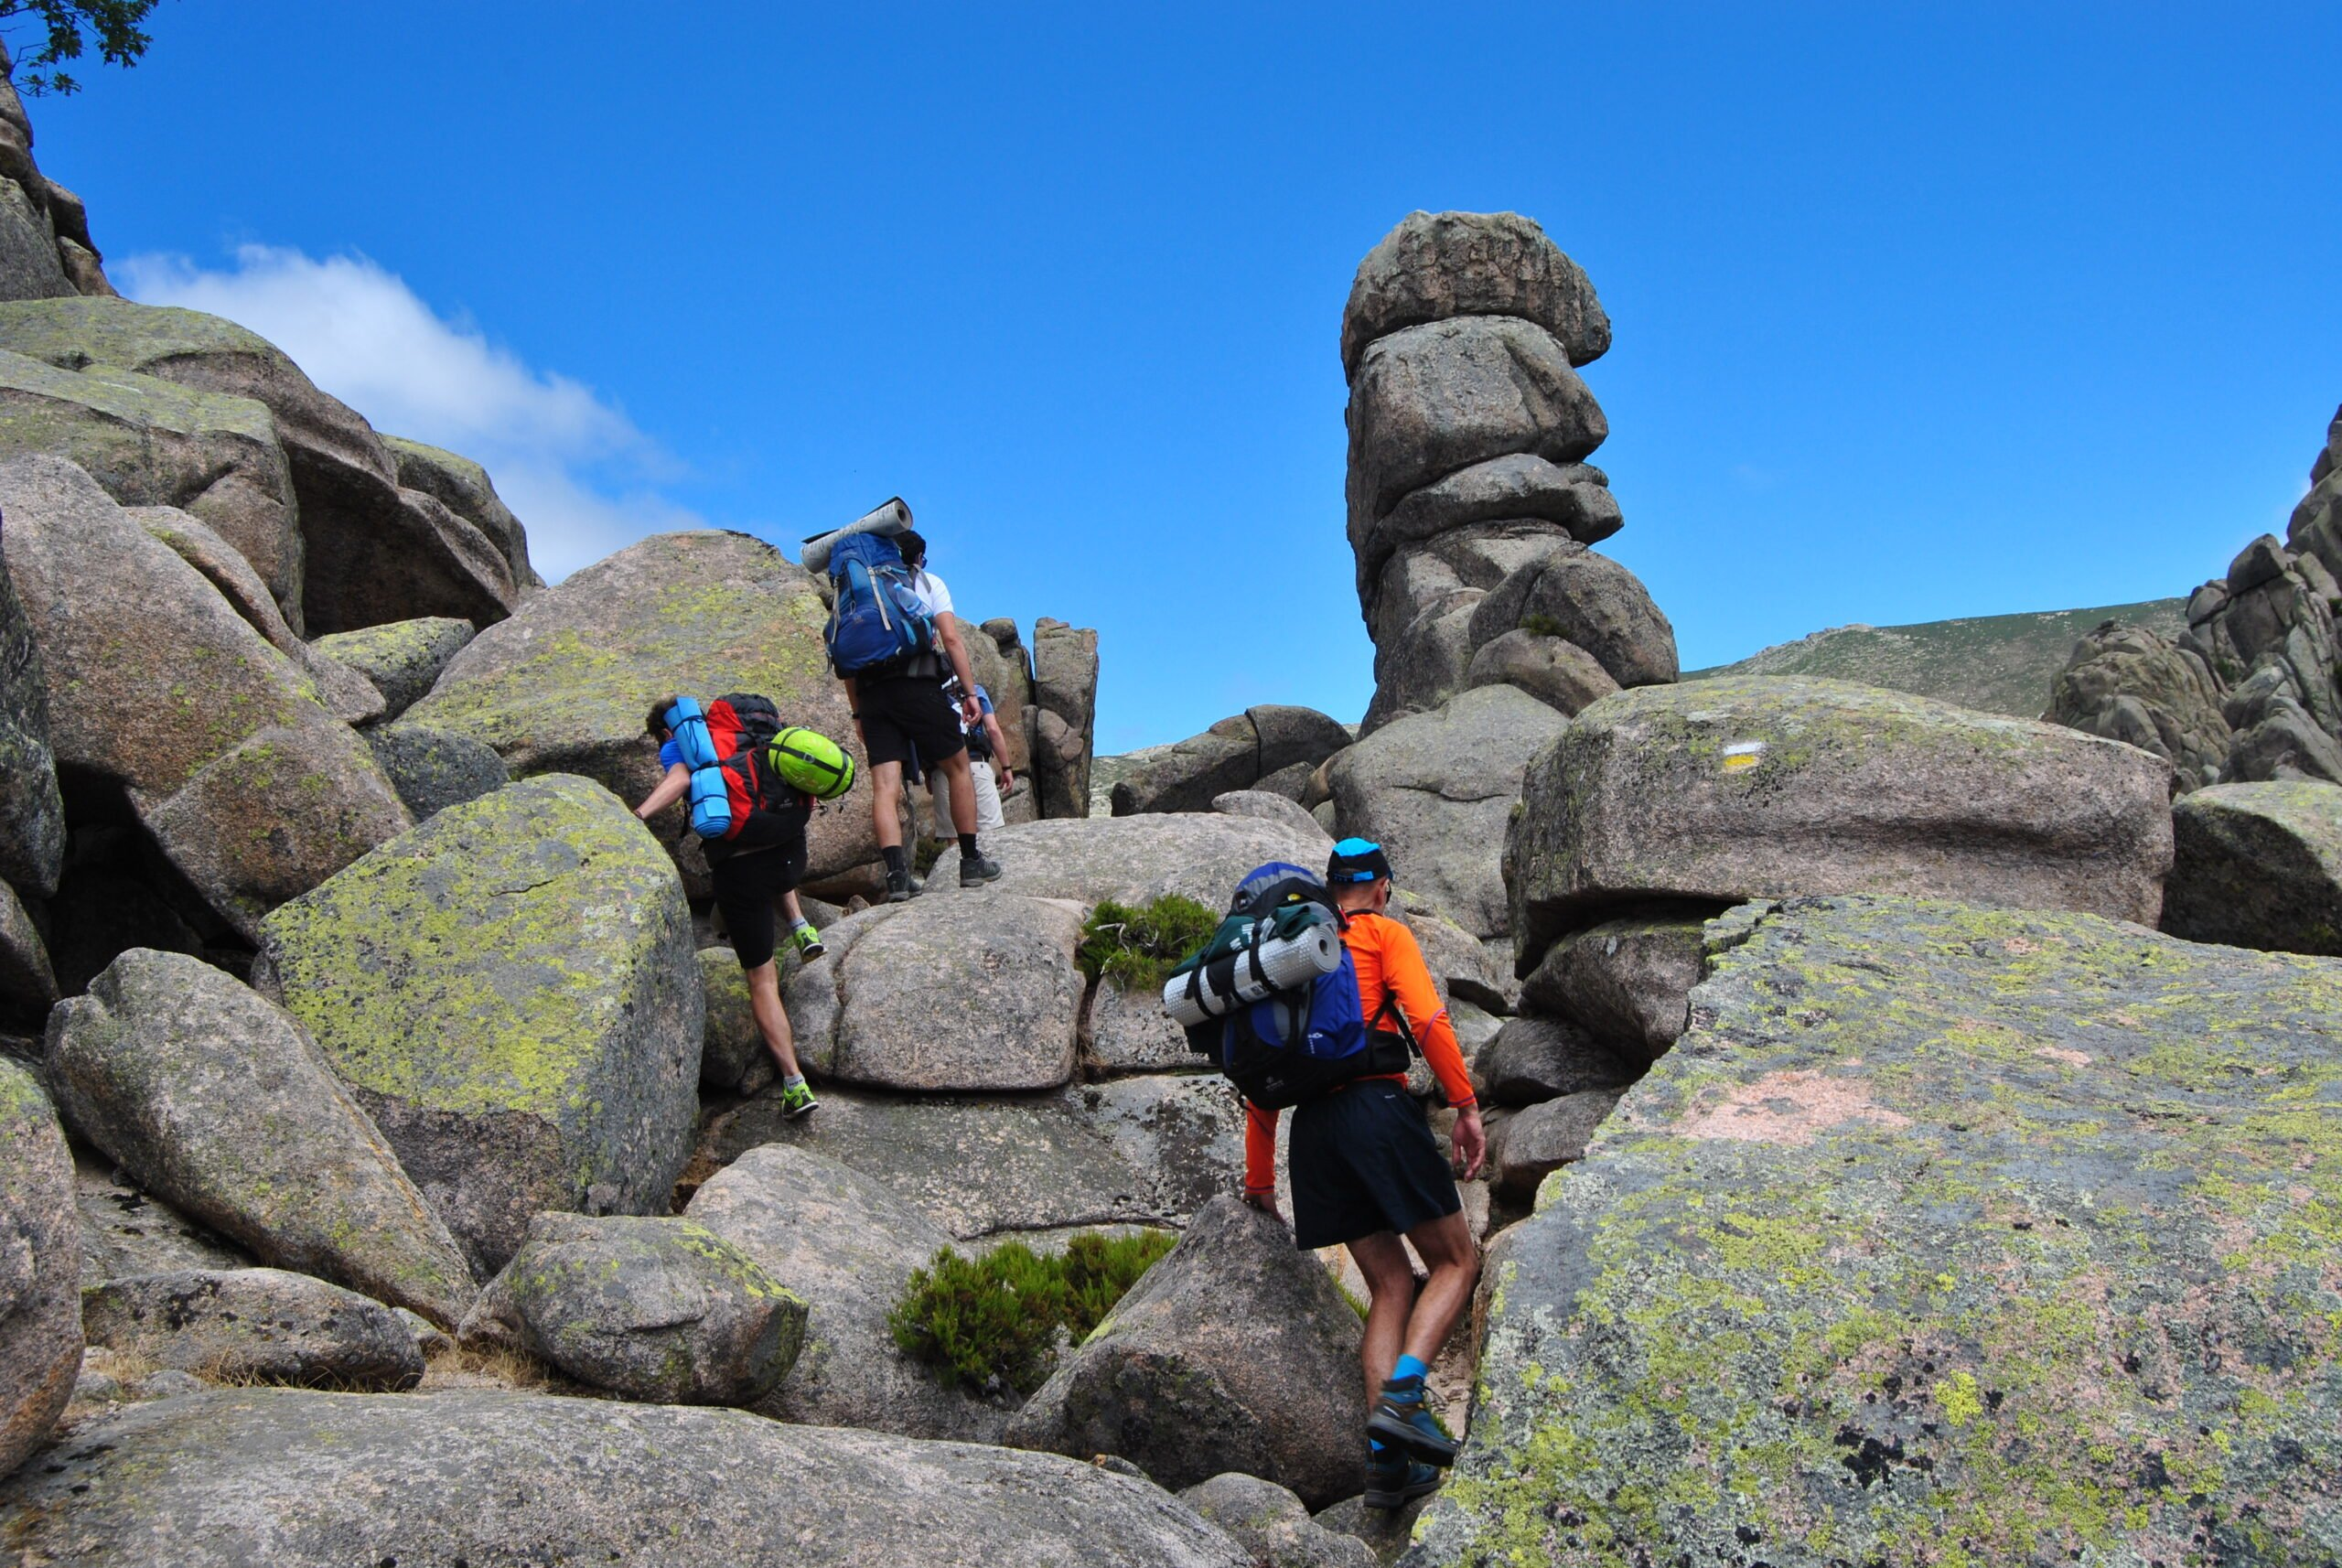 Complete A Challenging 2 Days Hike In Scenic La Pedriza, Sierra De Guadarrama National Park In Our 2 Day Hike And Camp In La Pedriza